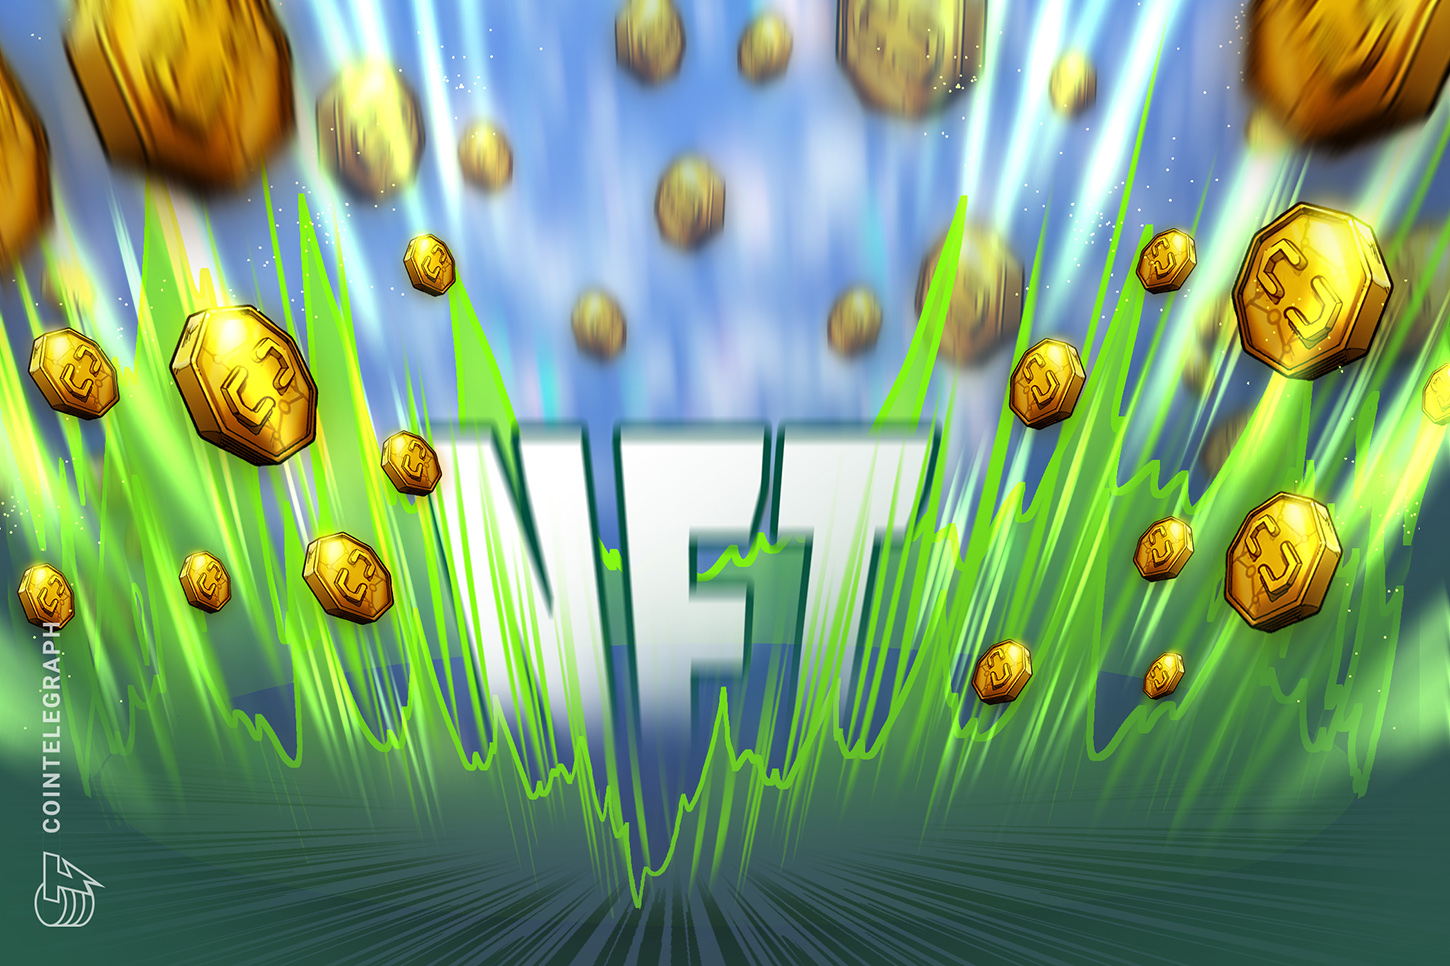 Nifty News: Olympic NFT pins and games, world's first intelligent NFT and more